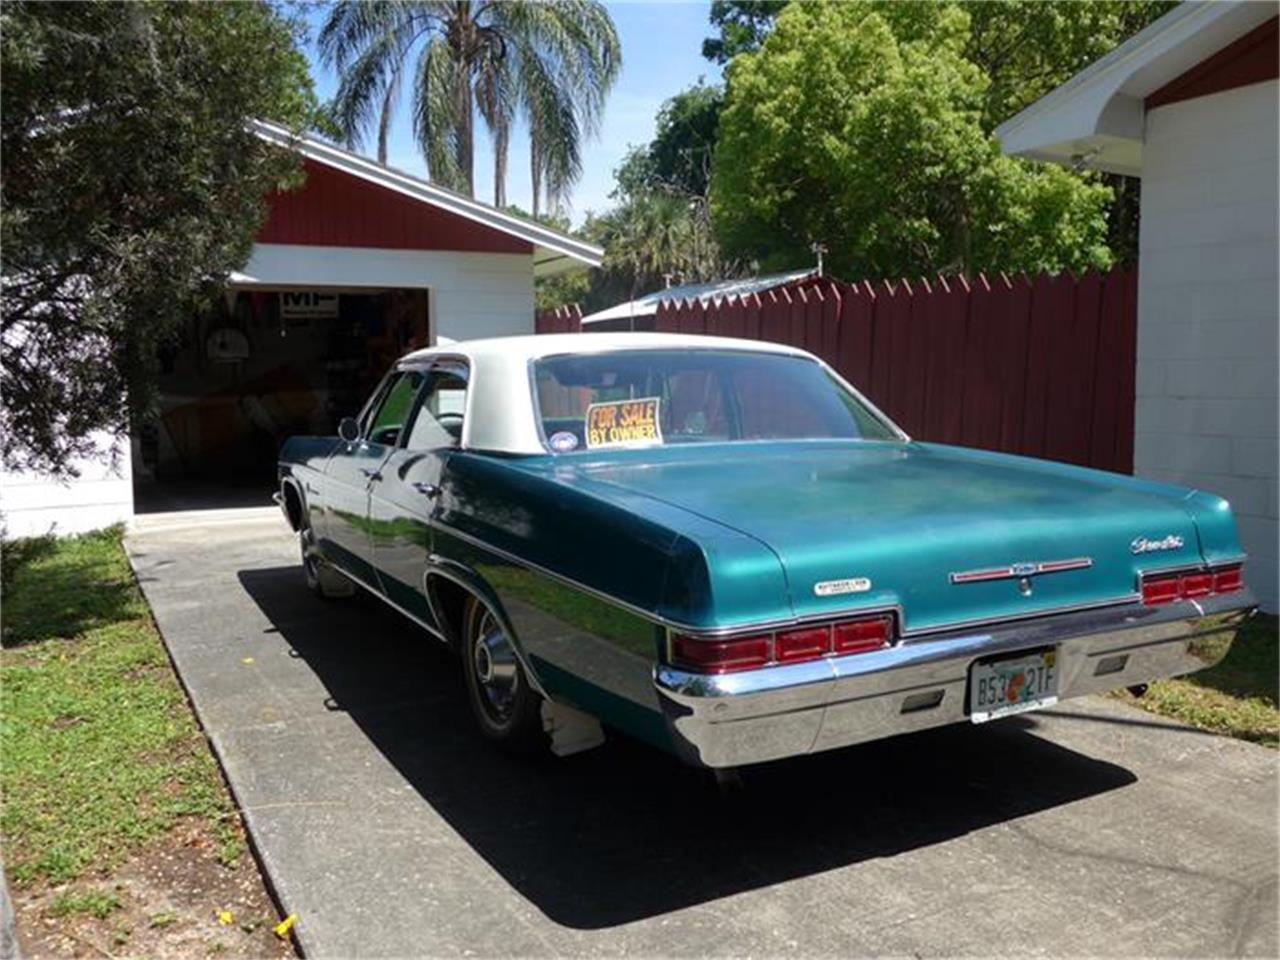 Large Picture of Classic 1966 Chevrolet Impala - $11,000.00 Offered by a Private Seller - B878